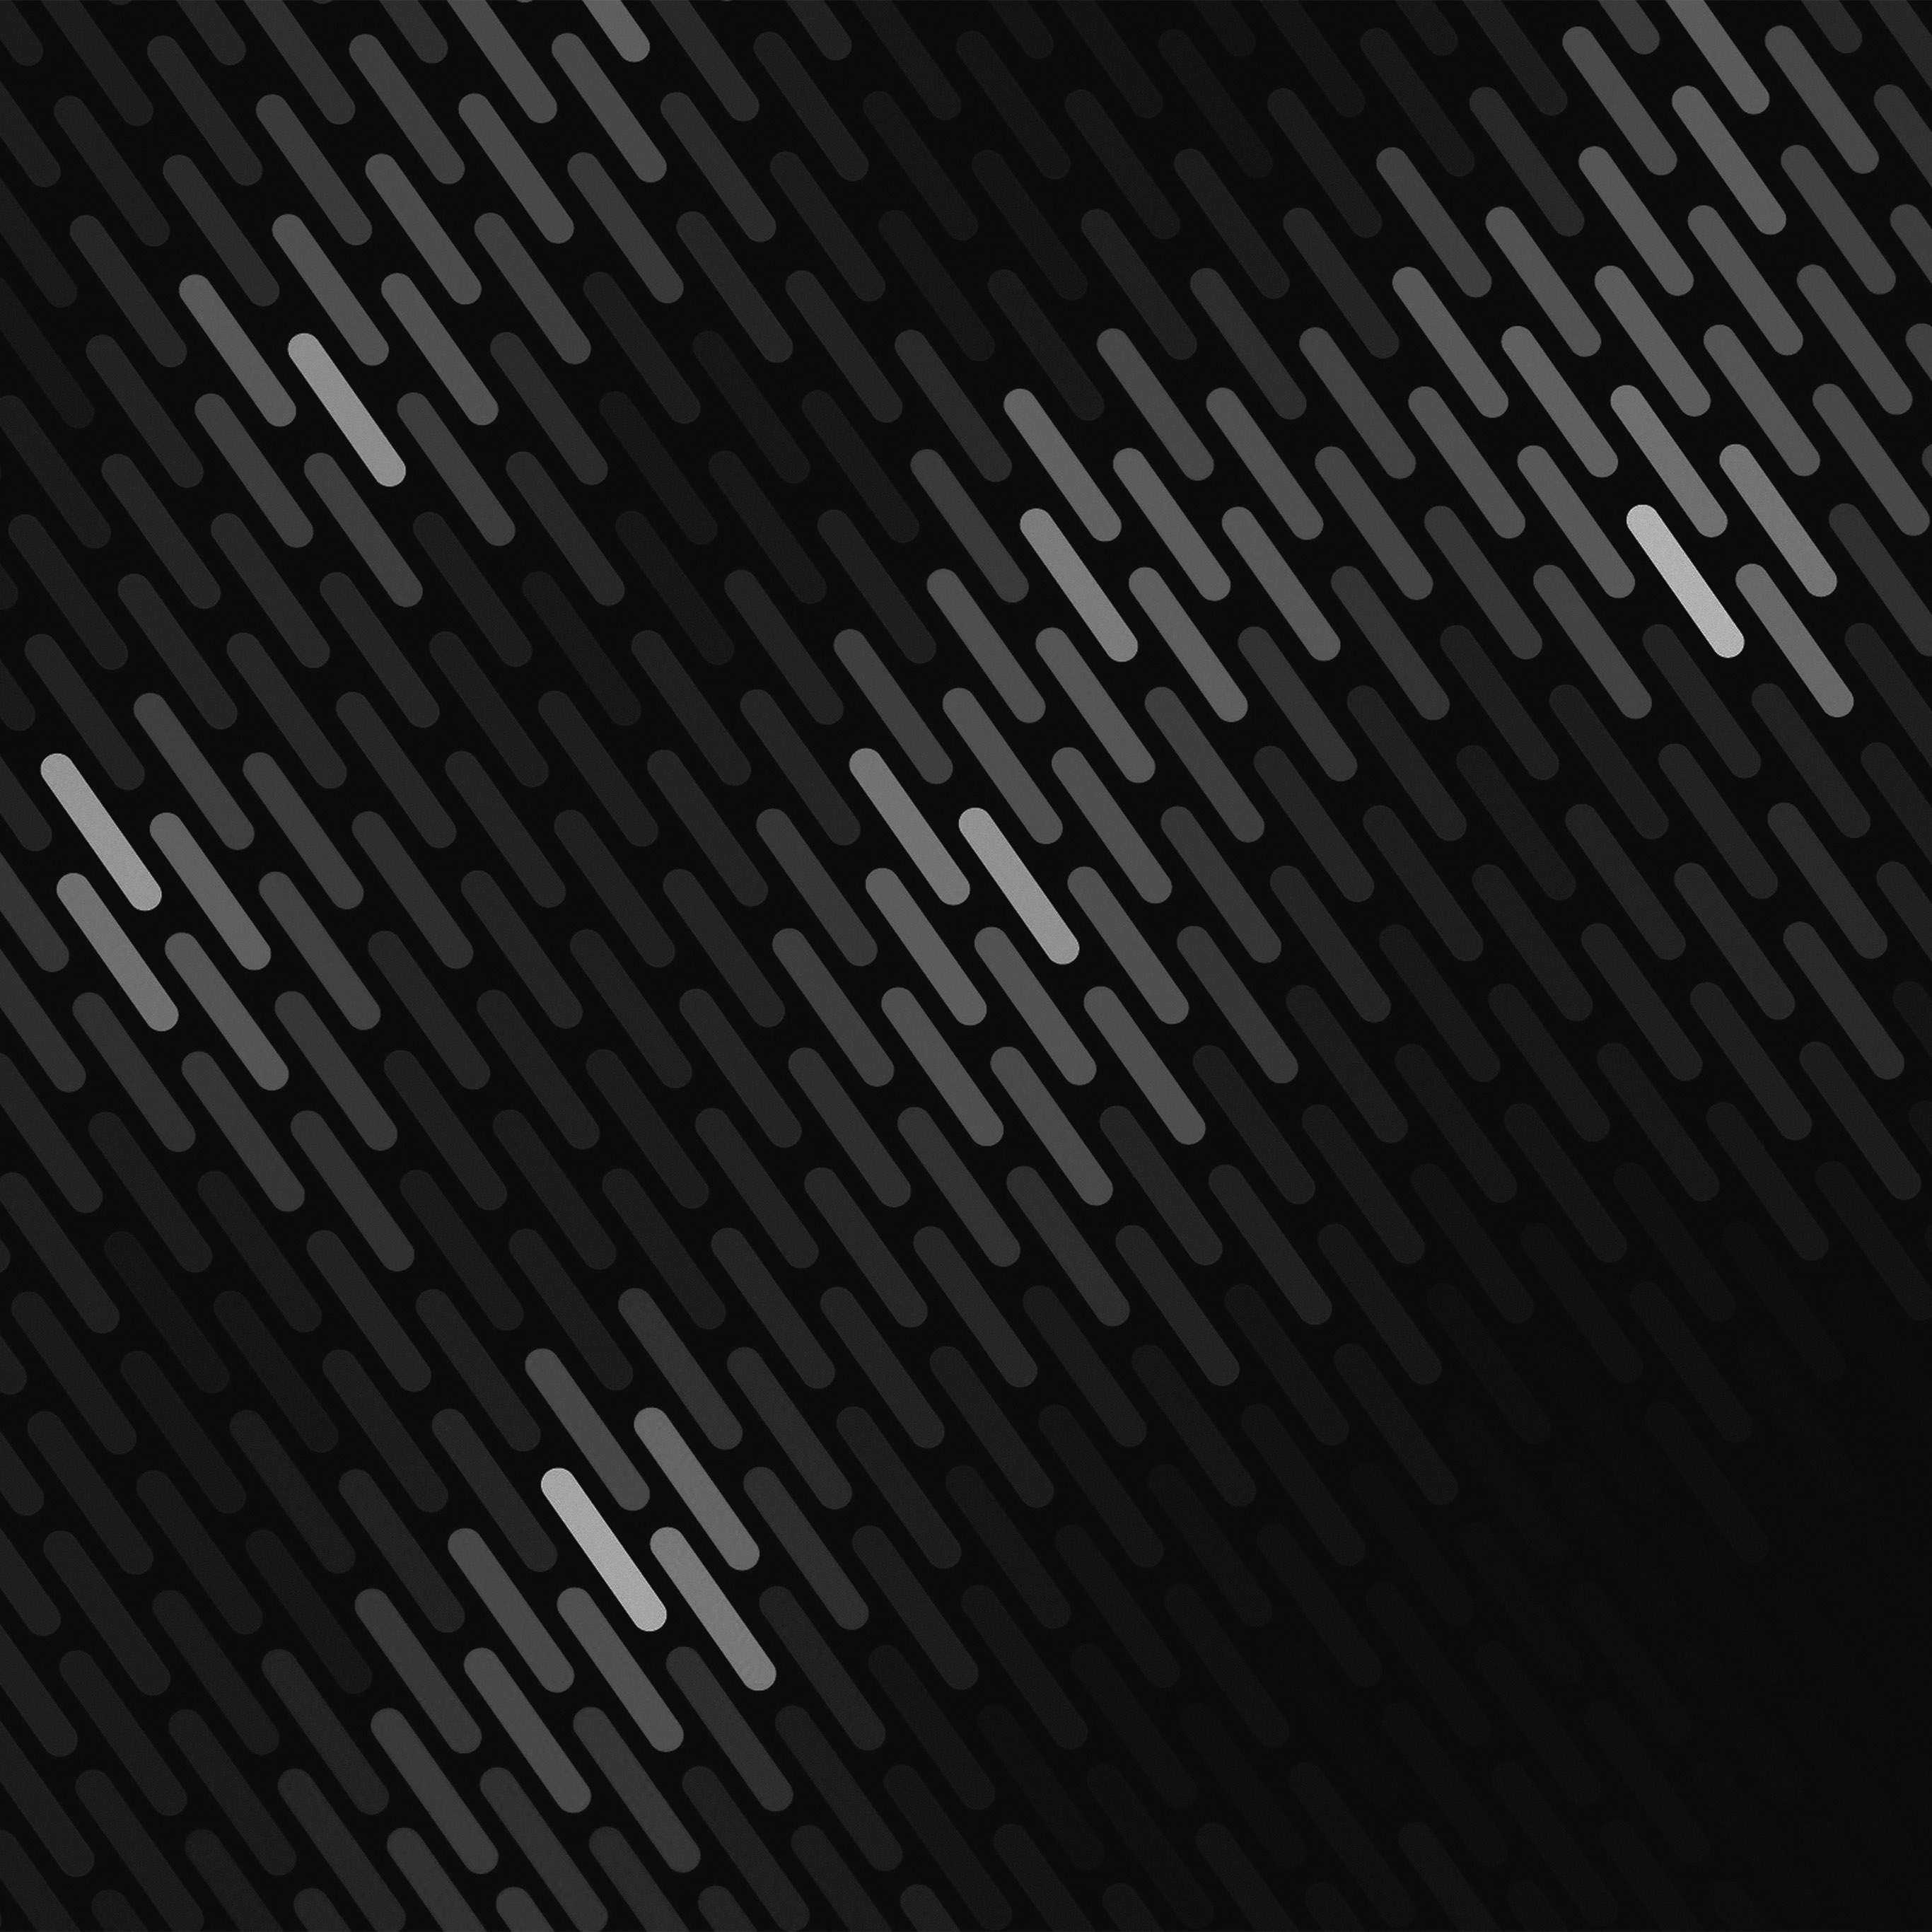 Vo00 Abstract Dark Bw Dots Lines Pattern Wallpaper